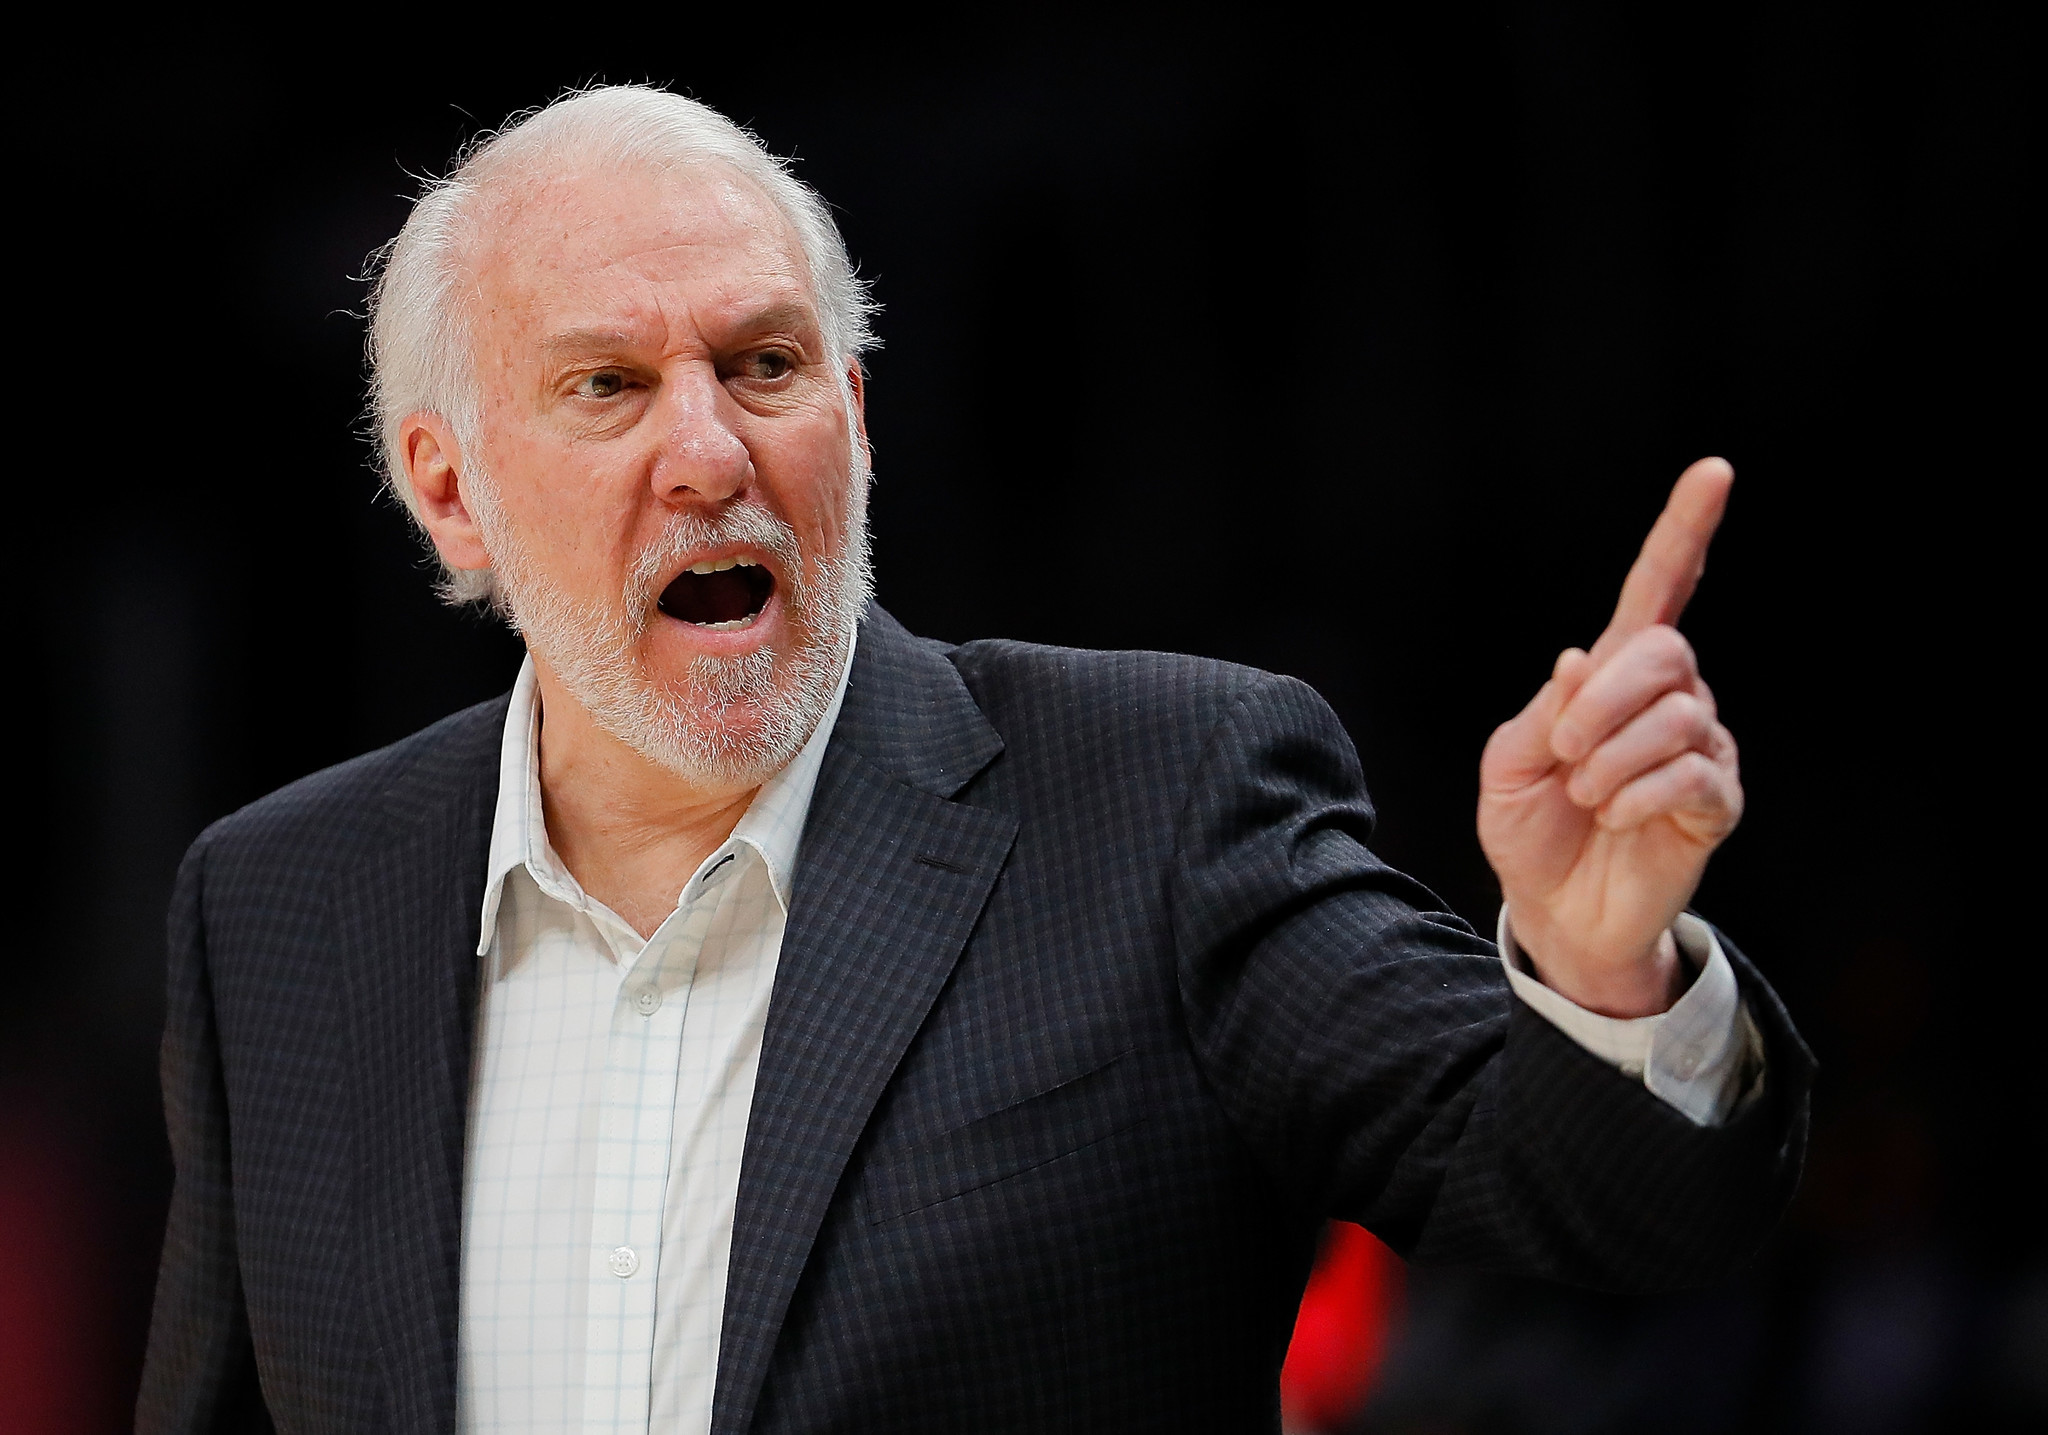 Spurs coach Gregg Popovich calls out the Knicks for acting unprofessionally in free agency